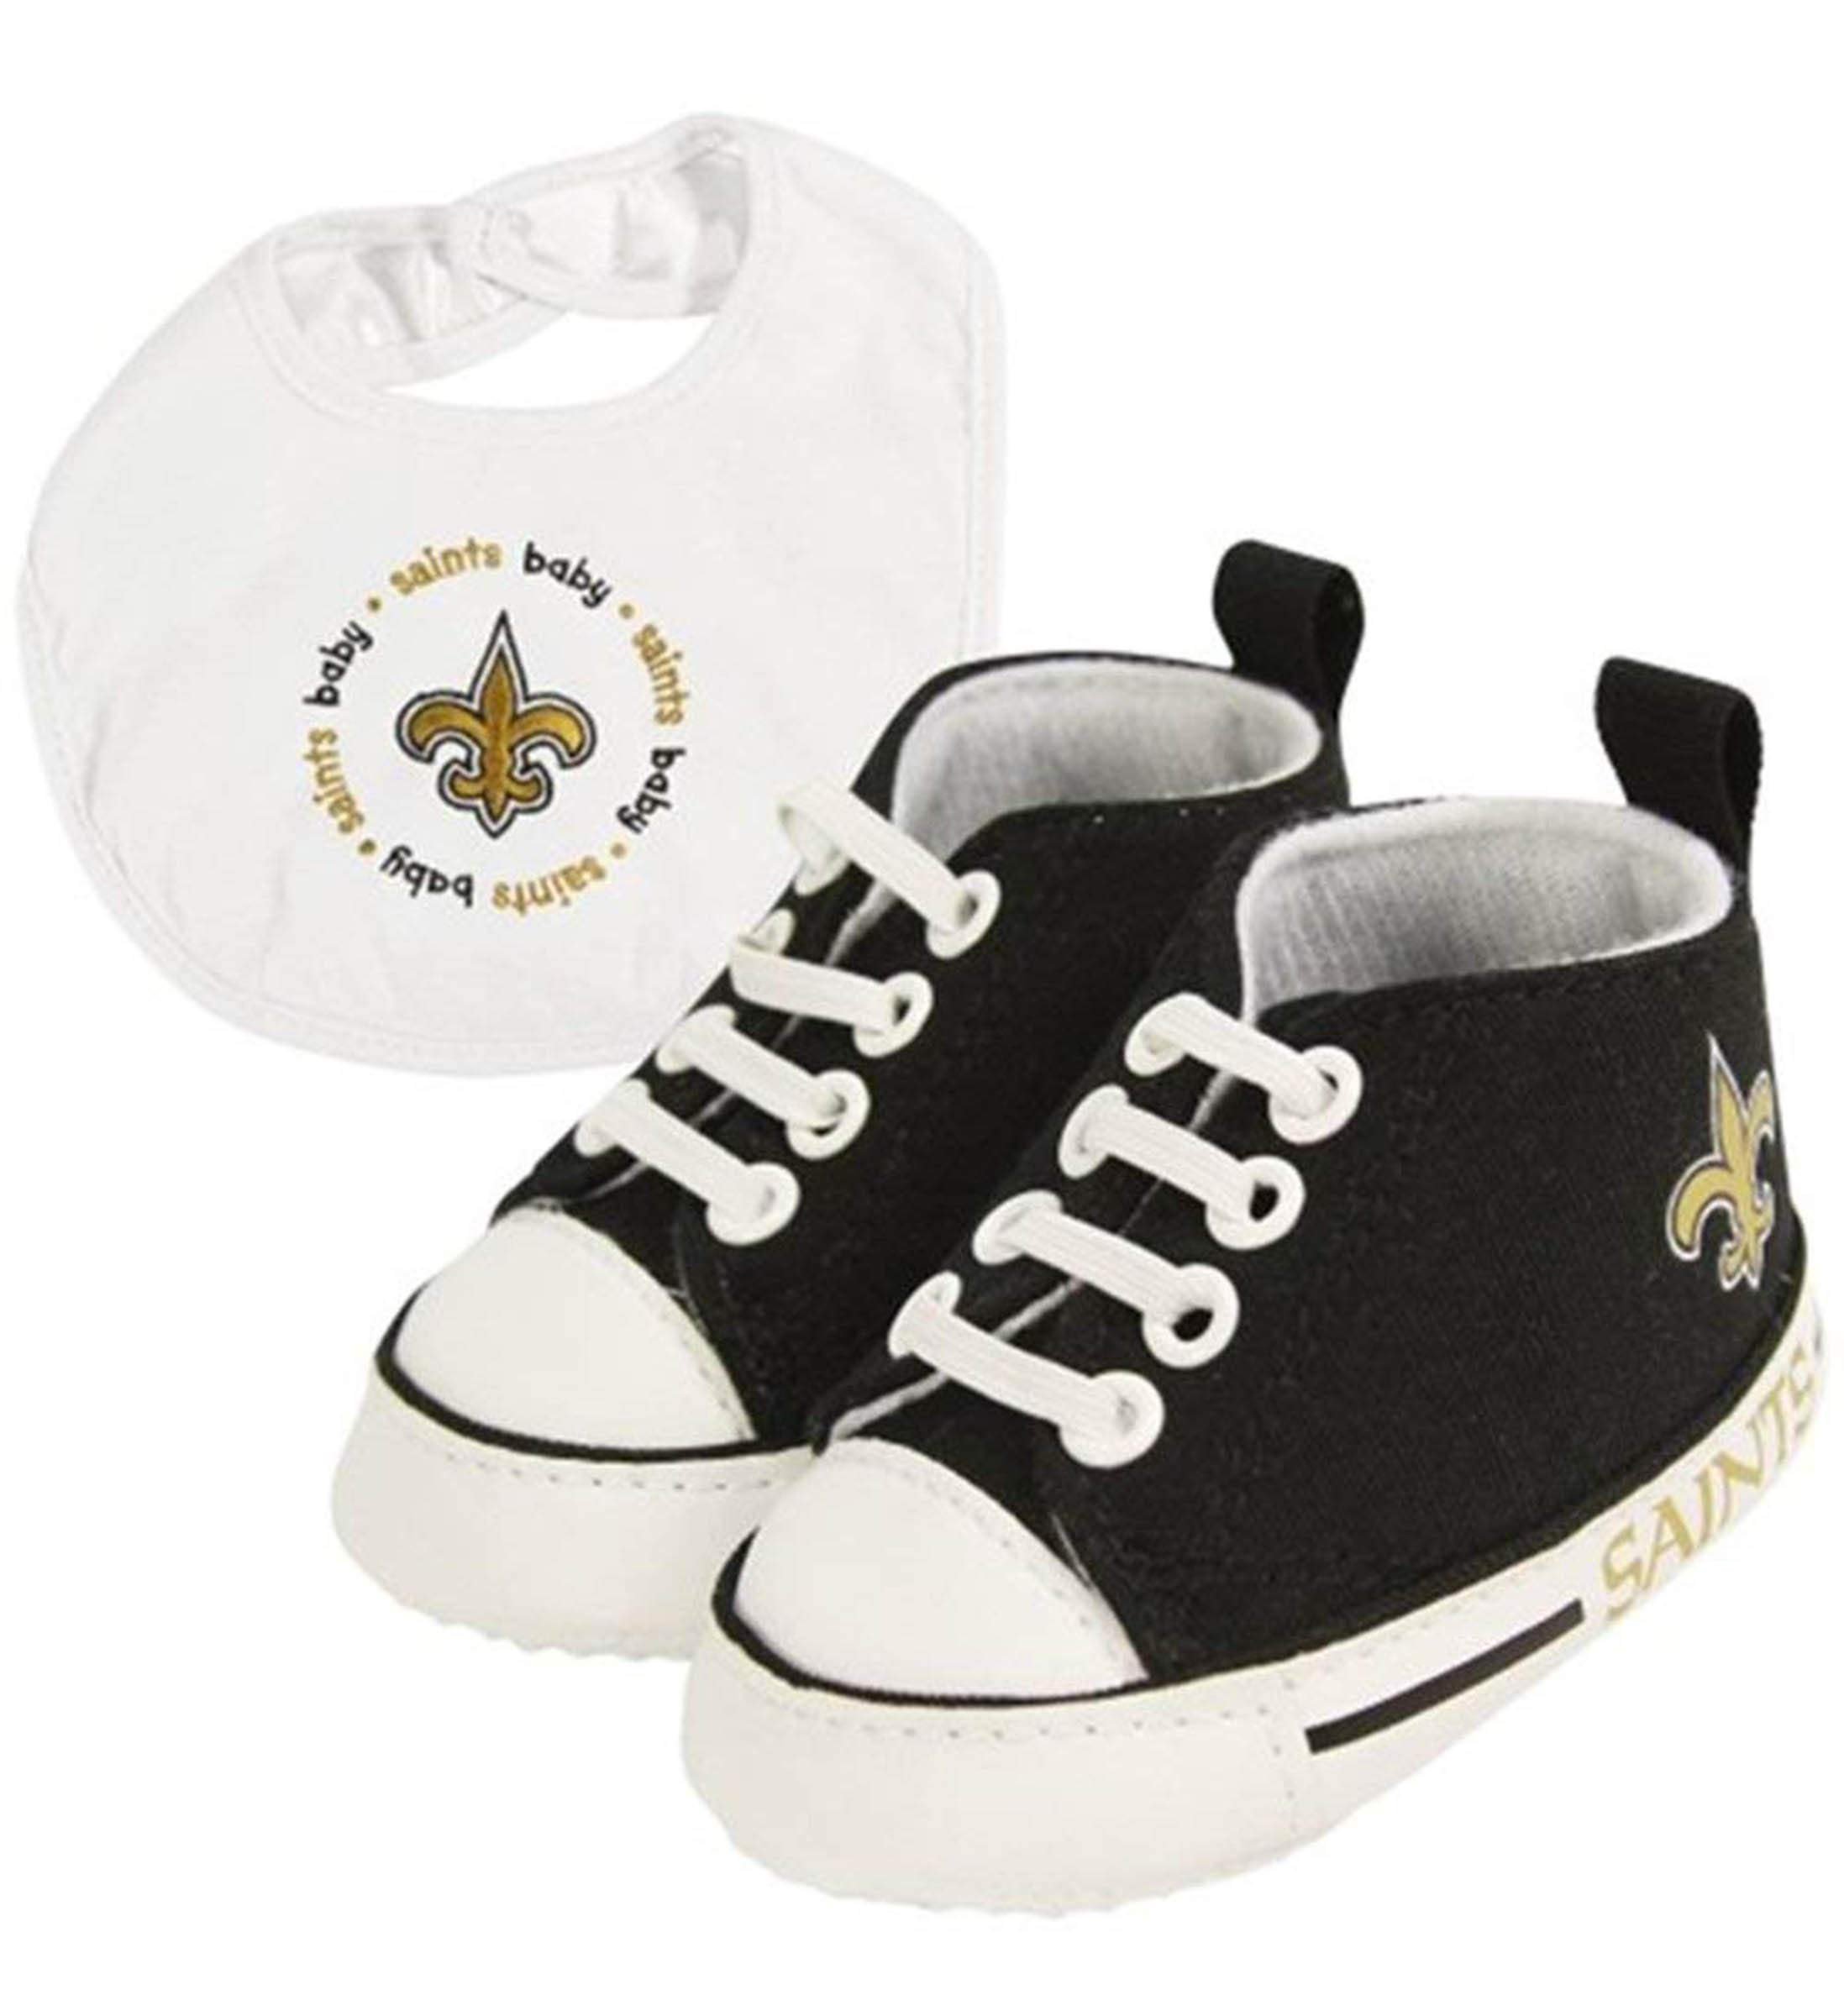 Mozlly Multipack - Baby Fanatic New Orleans Saints Feeding Bib with Pre-Walker High Top Shoes (3pc Set) (Pack of 3)